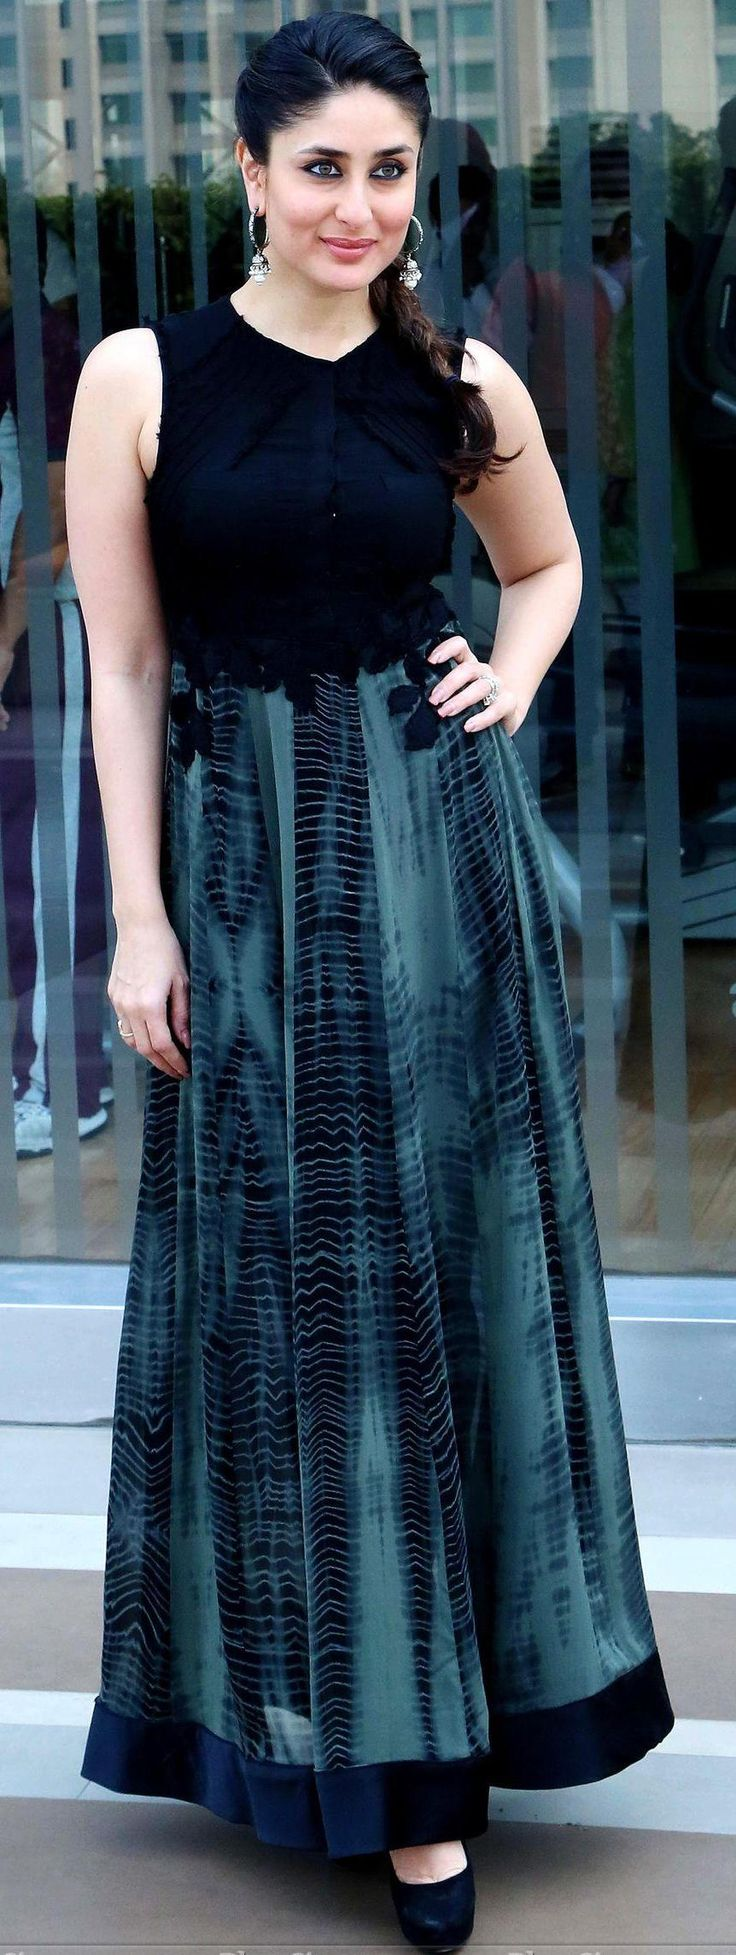 Kareena kapoor in an elegant dress